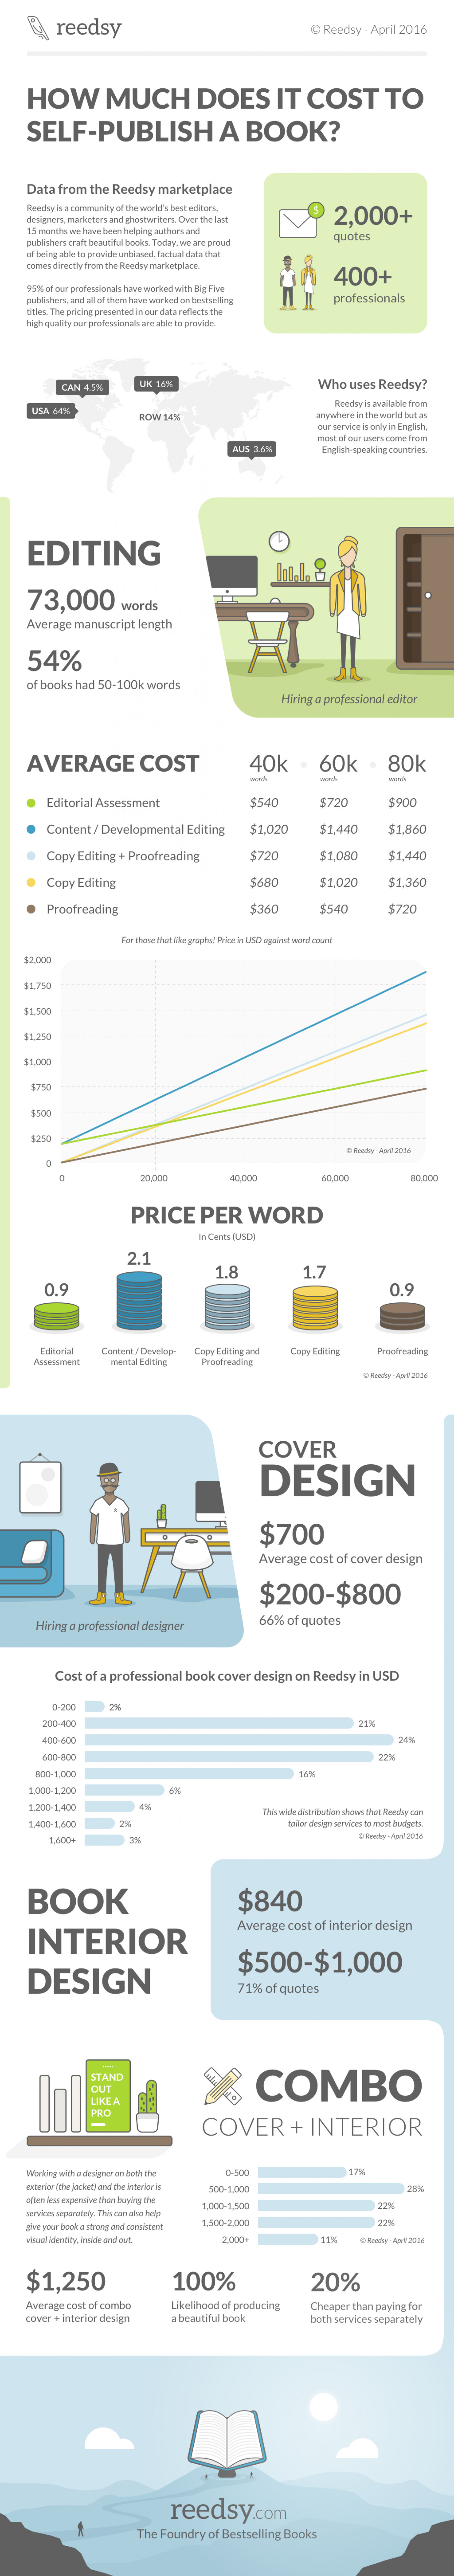 The Cost of Self-publishing a Book Infographic